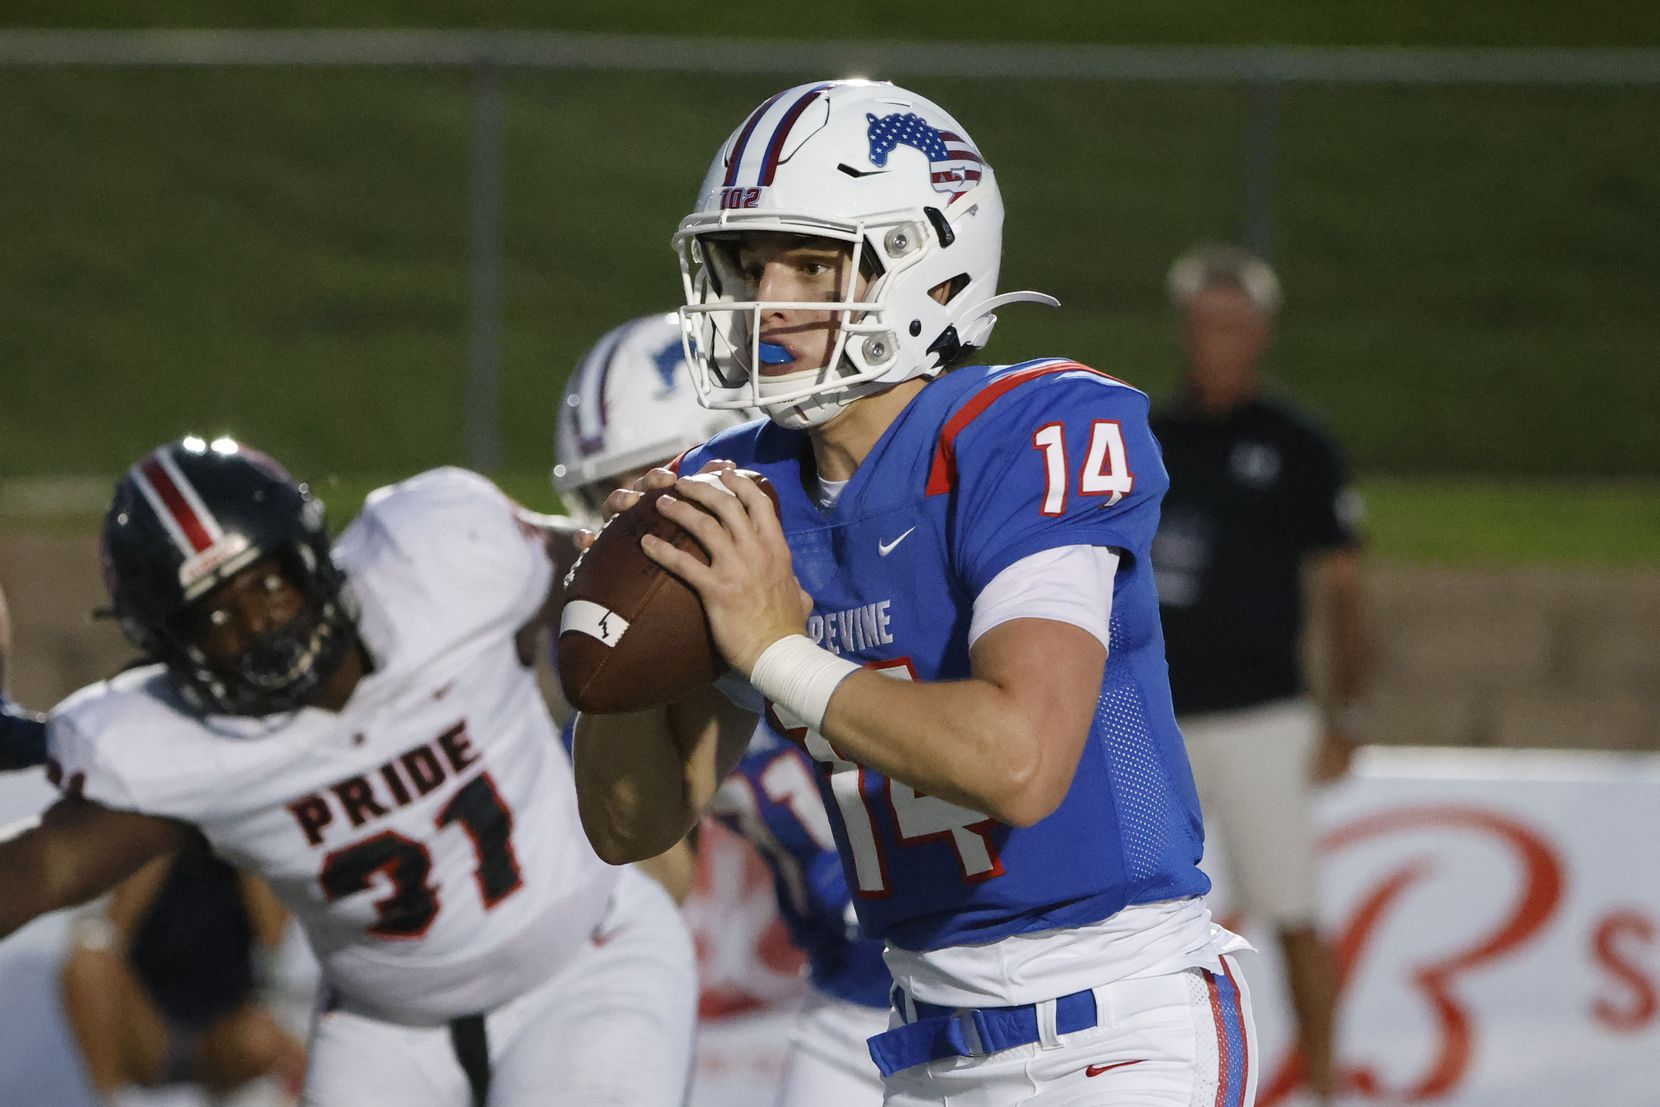 Grapevine quarterback Walker Berryman  prepares to throw against Colleyville Heritage during the first half of their high school football game in Grapevine, Texas on Aug. 27, 2021. (Michael Ainsworth/Special Contributor)